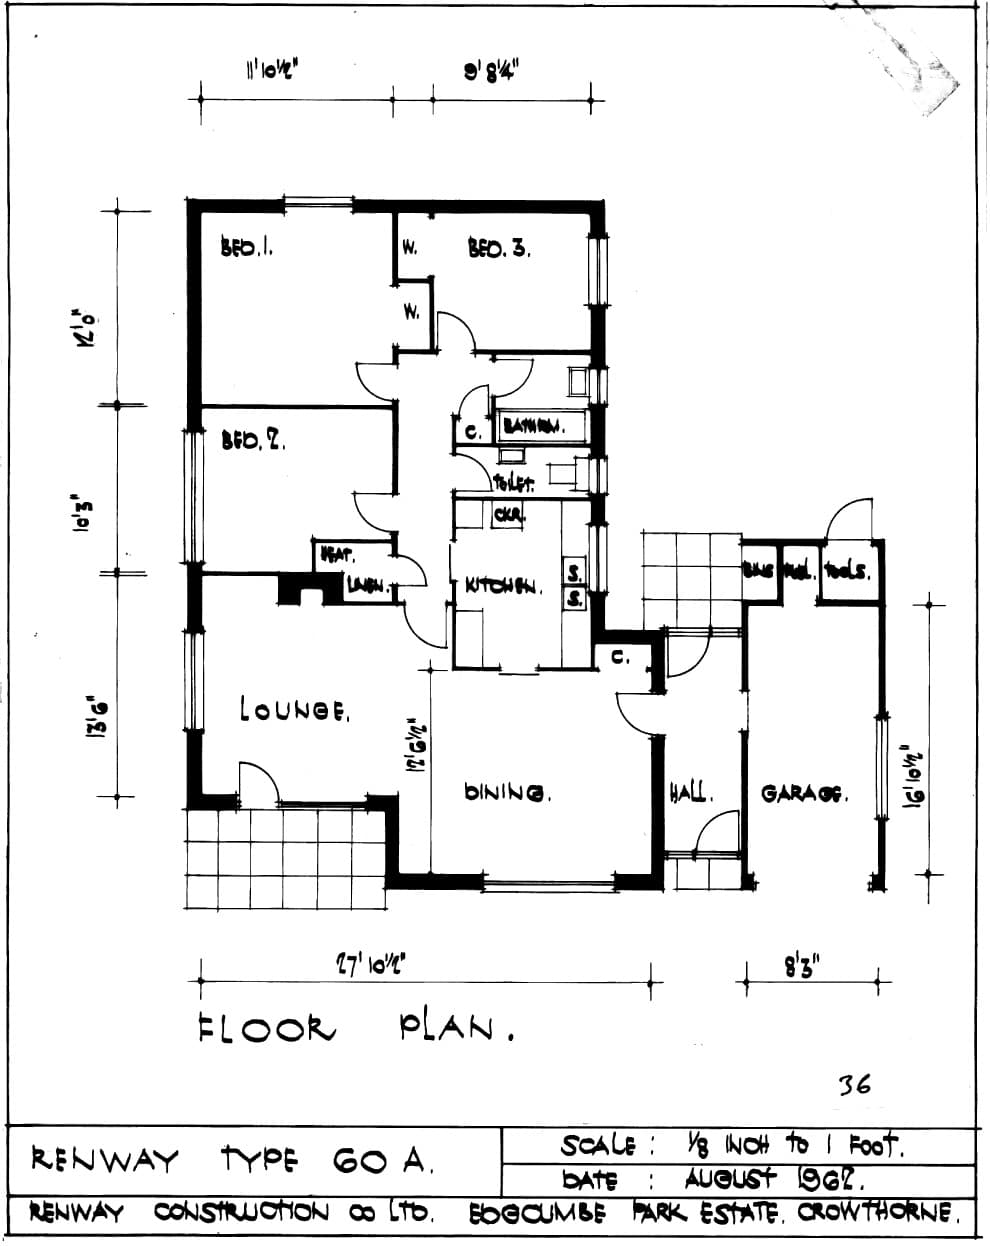 House plans and design architectural house plans bungalow for Architectural home plans